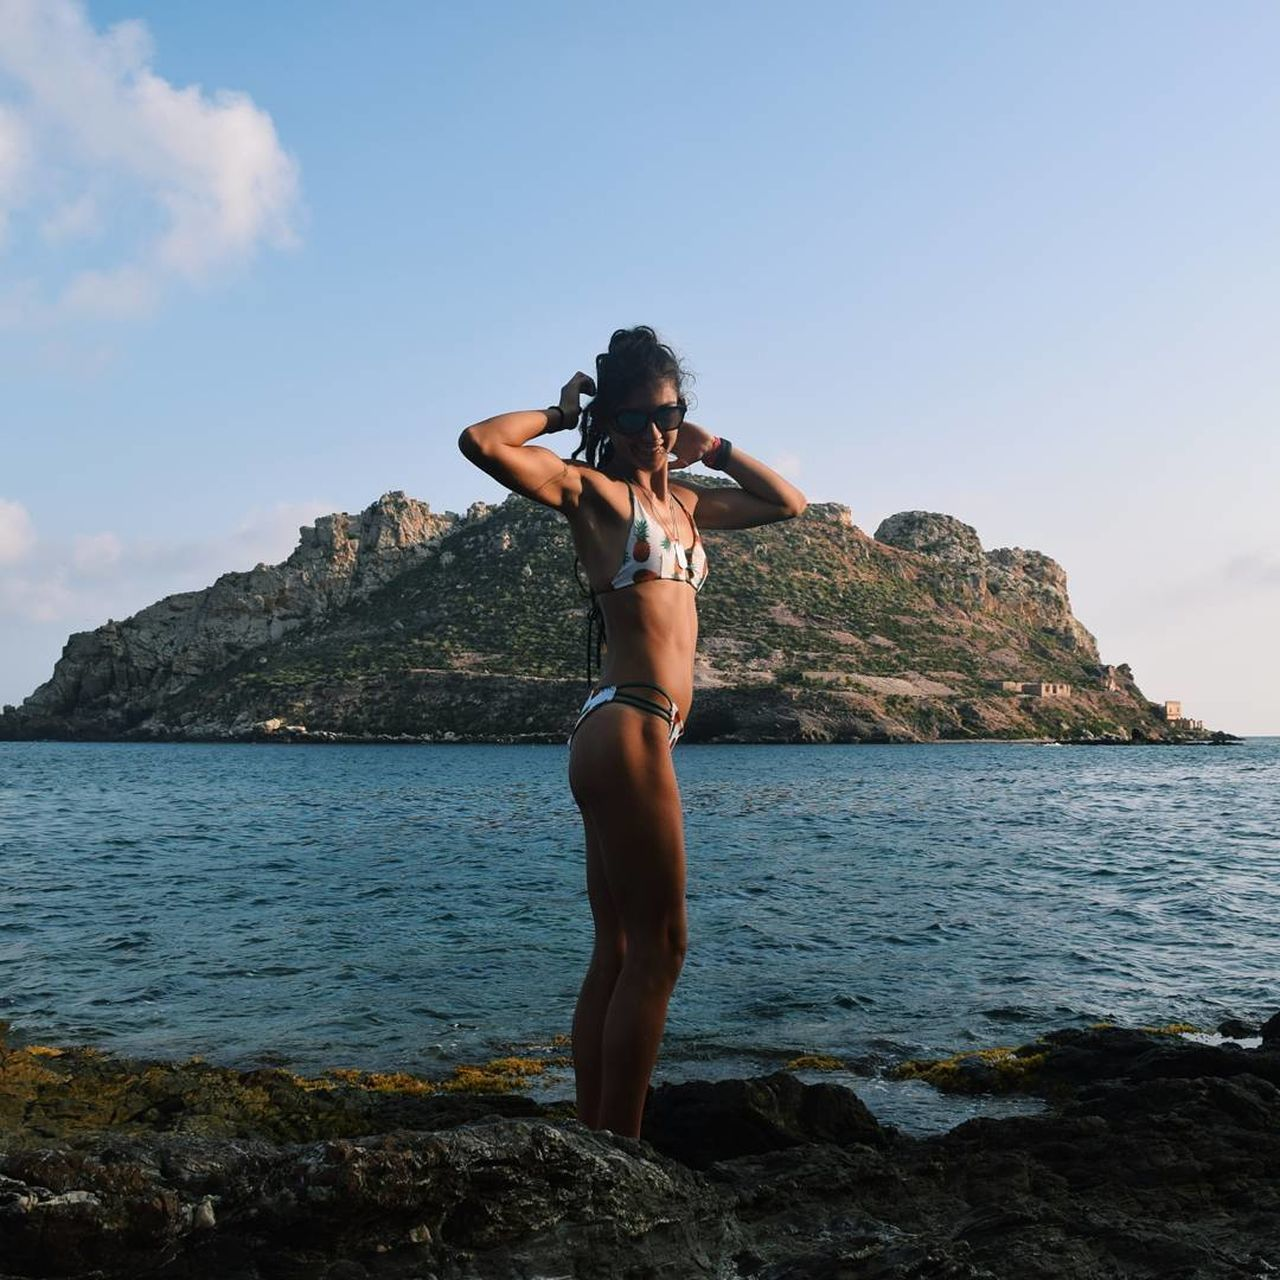 sea, rock - object, water, real people, one person, nature, lifestyles, full length, sky, beauty in nature, leisure activity, outdoors, young women, bikini, standing, day, scenics, young adult, mountain, beautiful woman